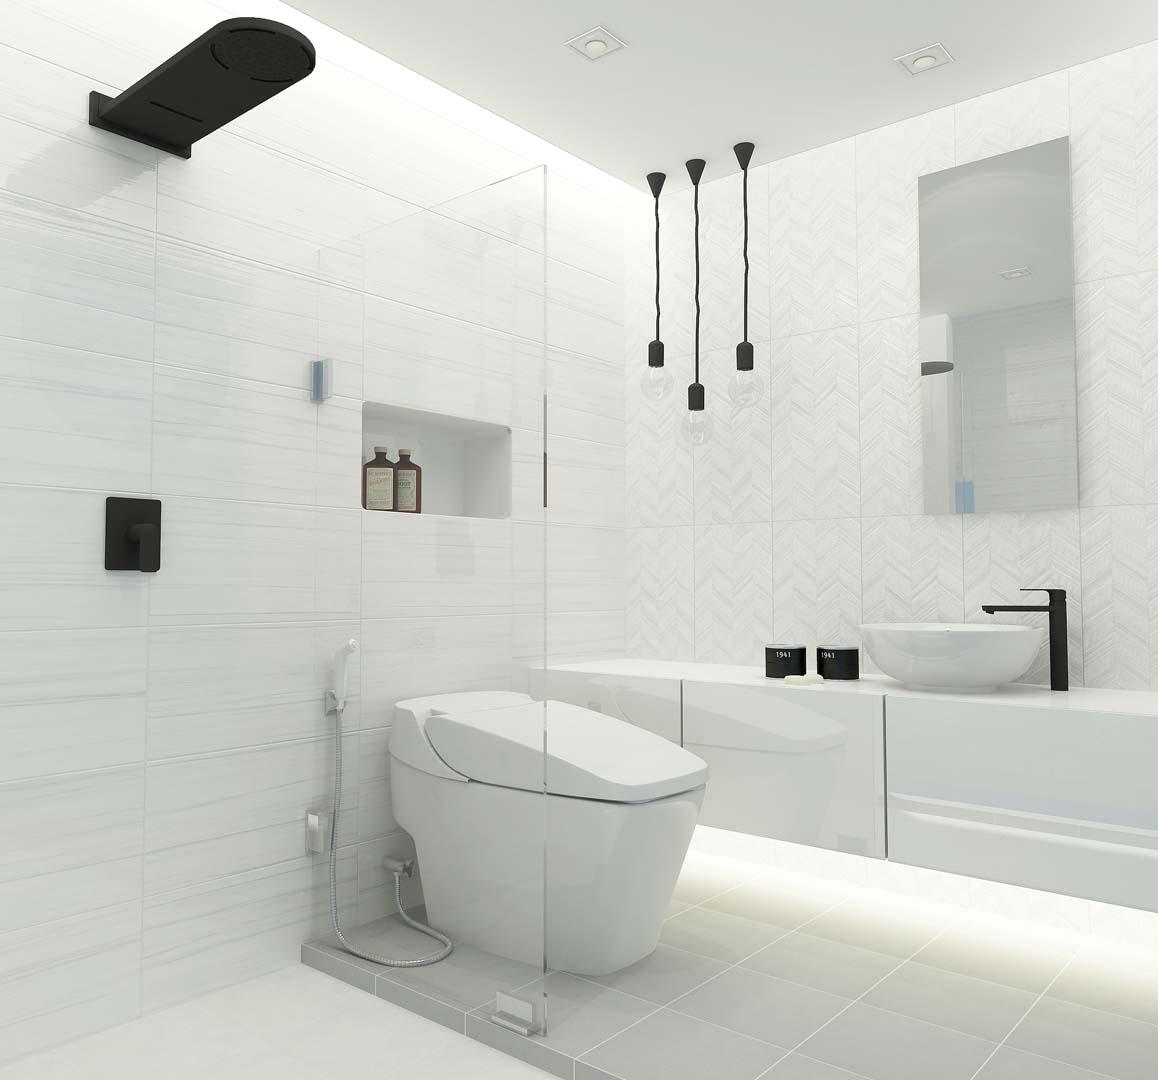 bathroom tiling ideas pictures wt arrowwhite un r t pk8 12x24pm cotto 16899